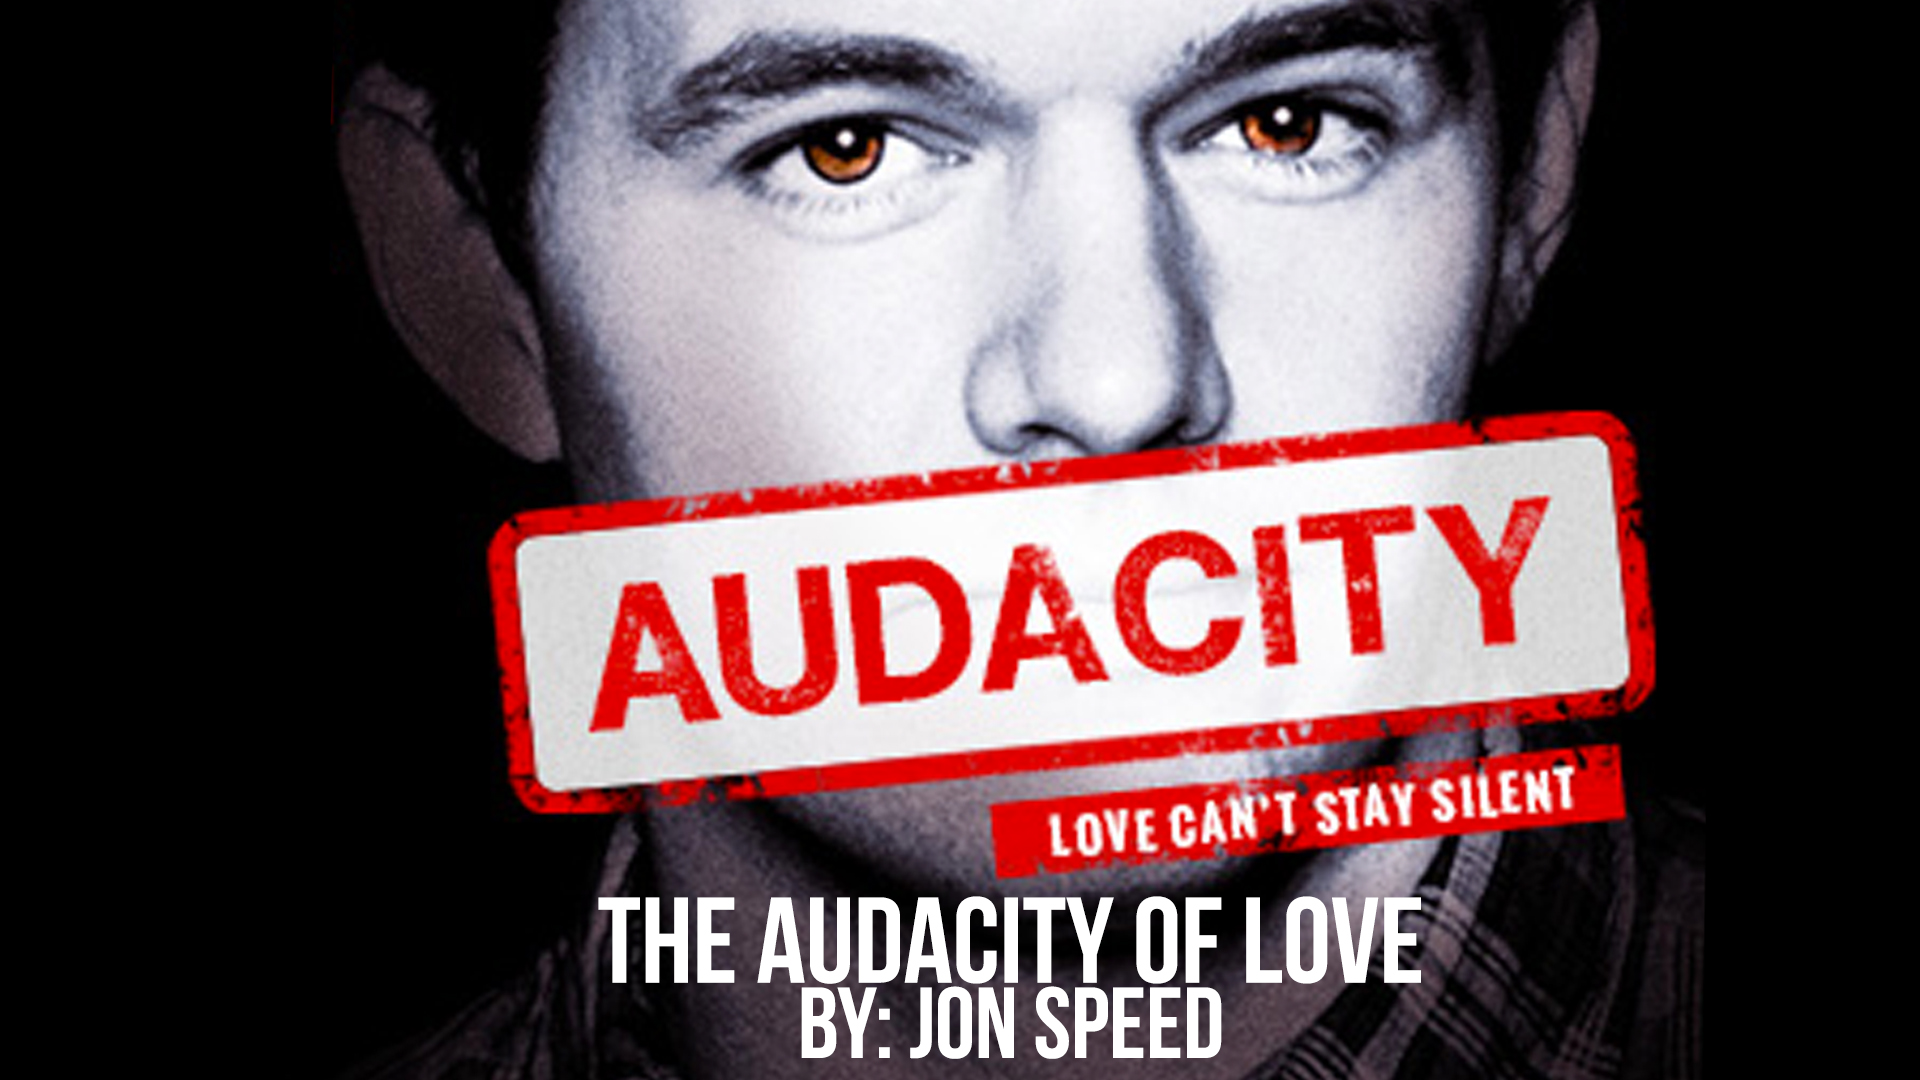 Audacity: The Audacity of Love